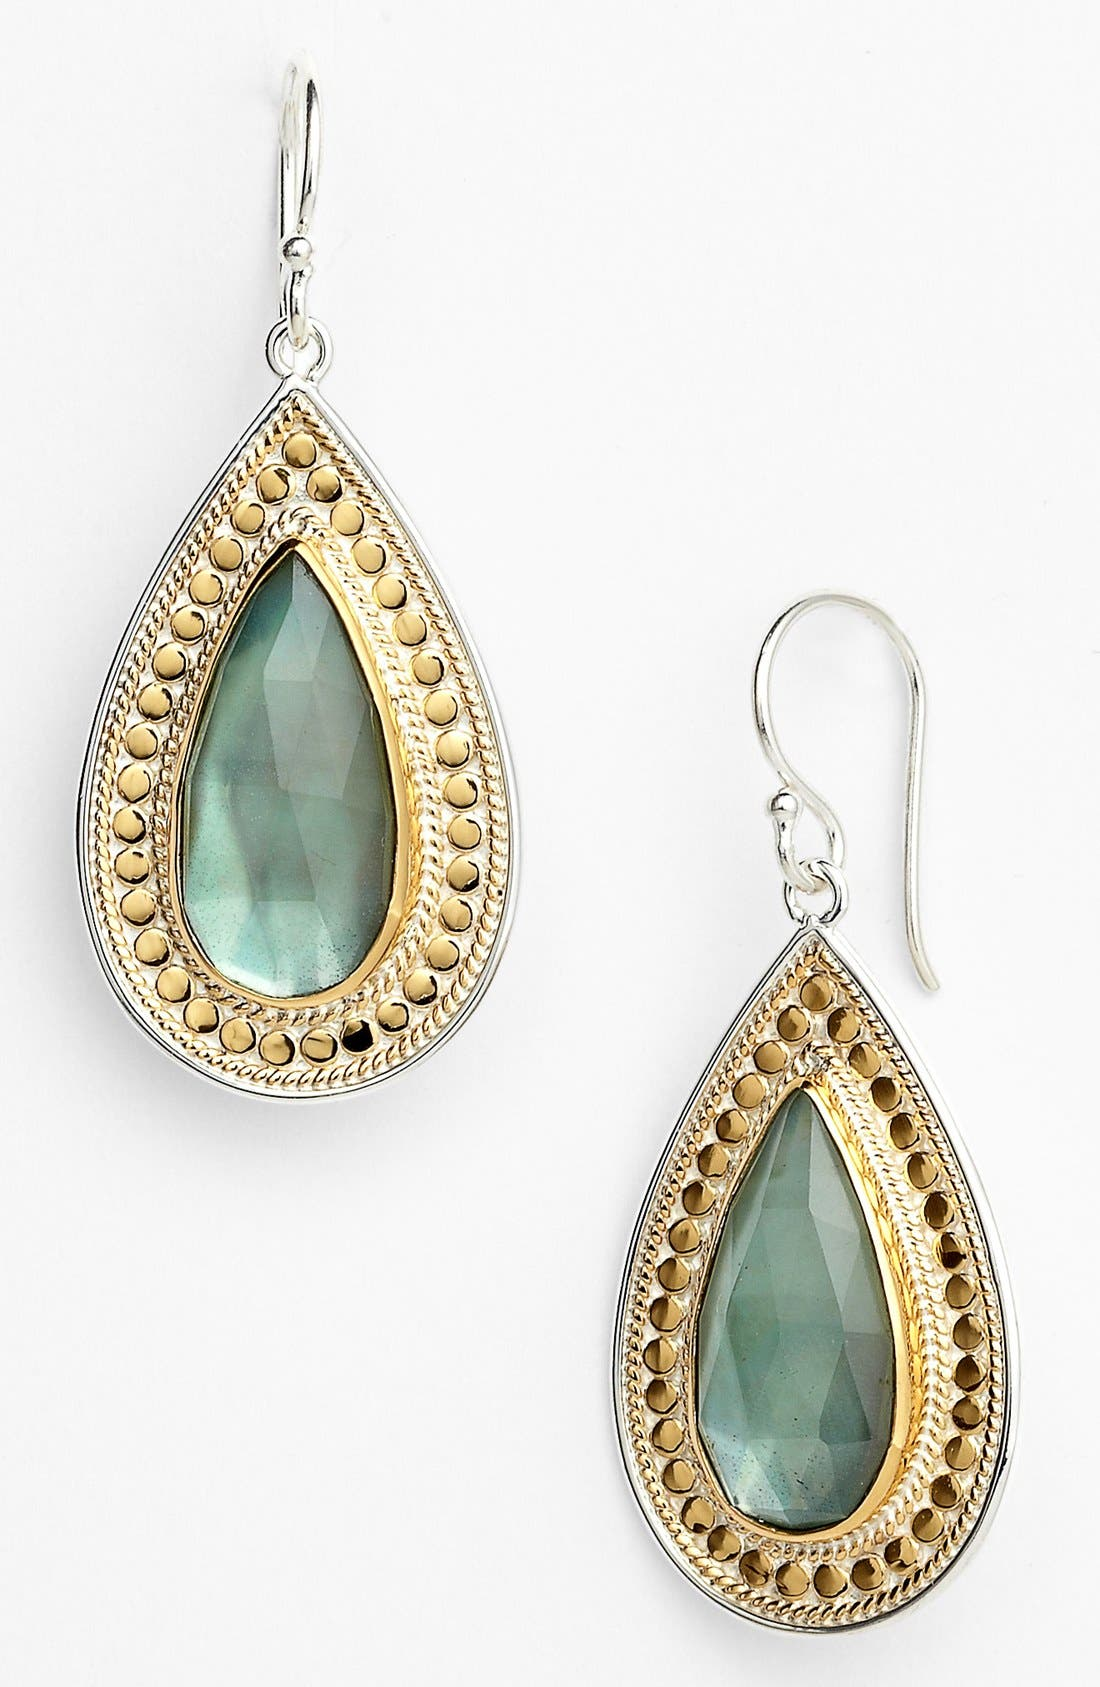 Alternate Image 1 Selected - Anna Beck 'Gili' Large Teardrop Earrings